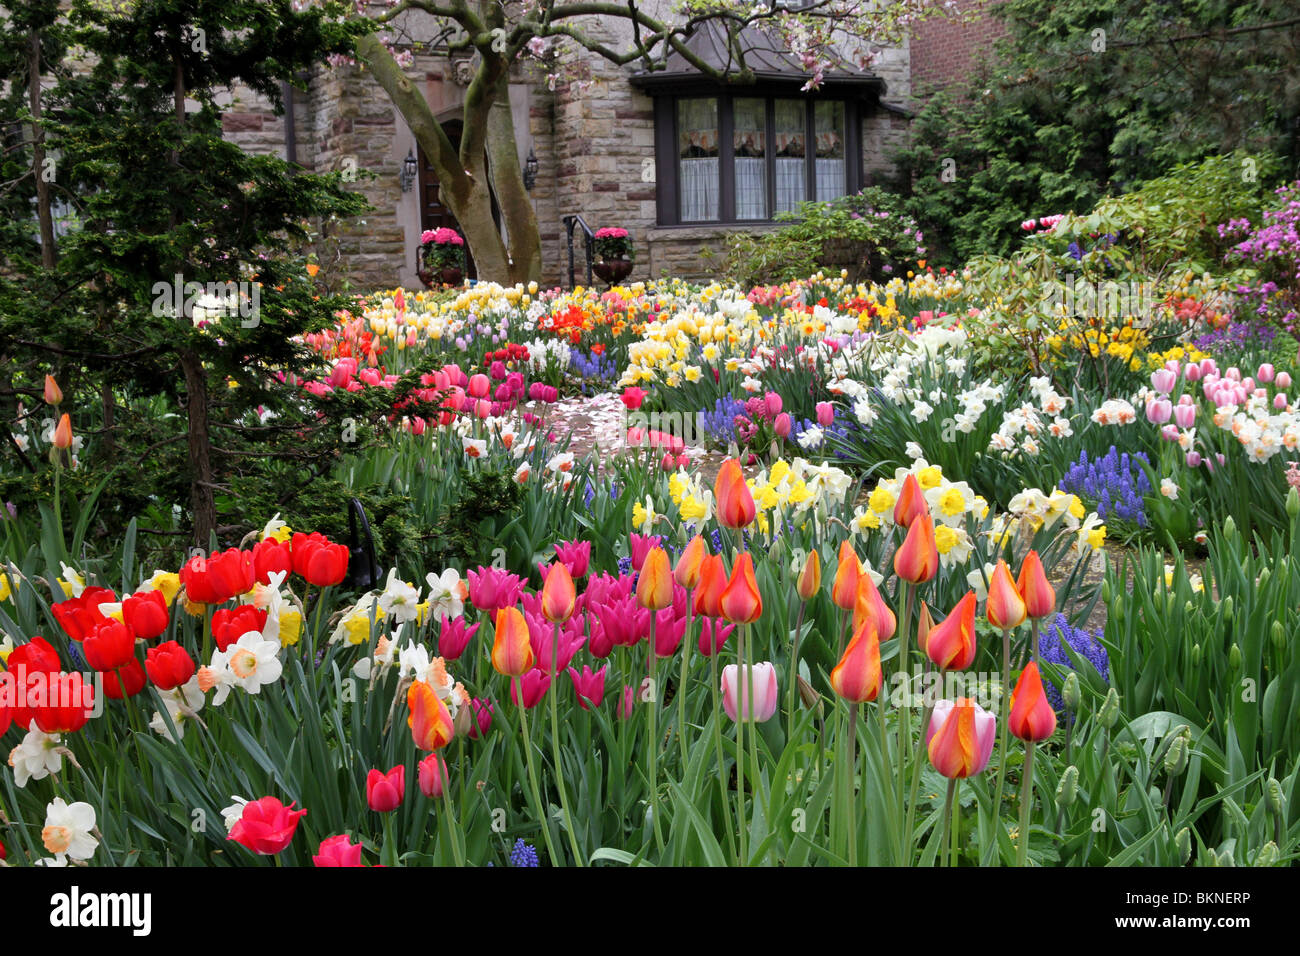 Spring garden in front yard, with colorful tulips - Stock Image